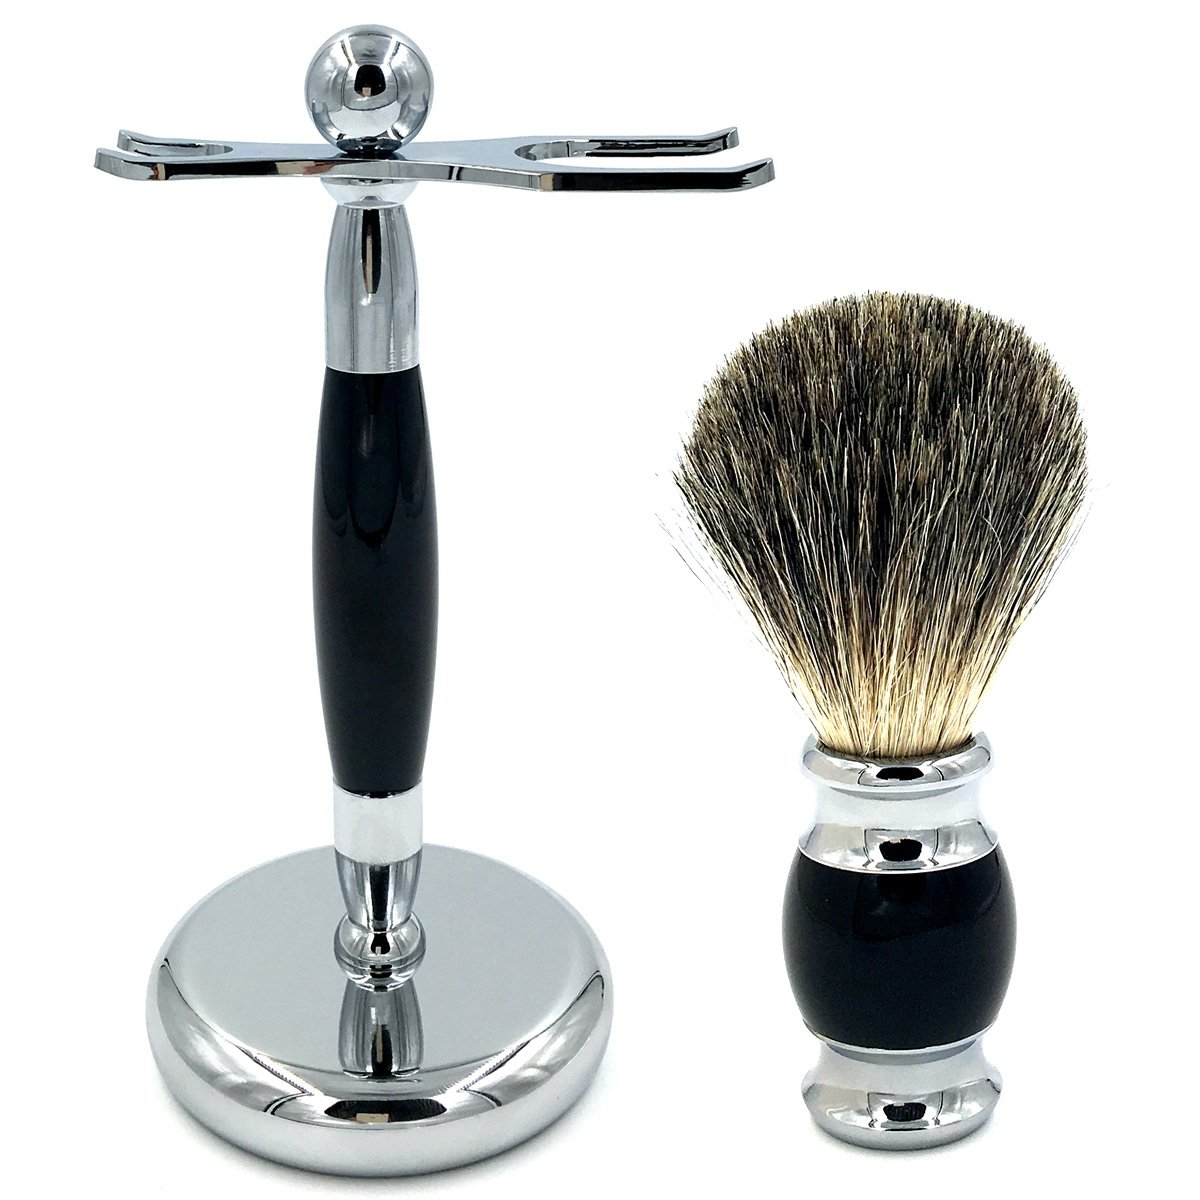 Men's Deluxe Shaving Stand Razor Brush Holder With 100% Pure Badger Shaving Brush, The Best Shaving Kit for Your Life